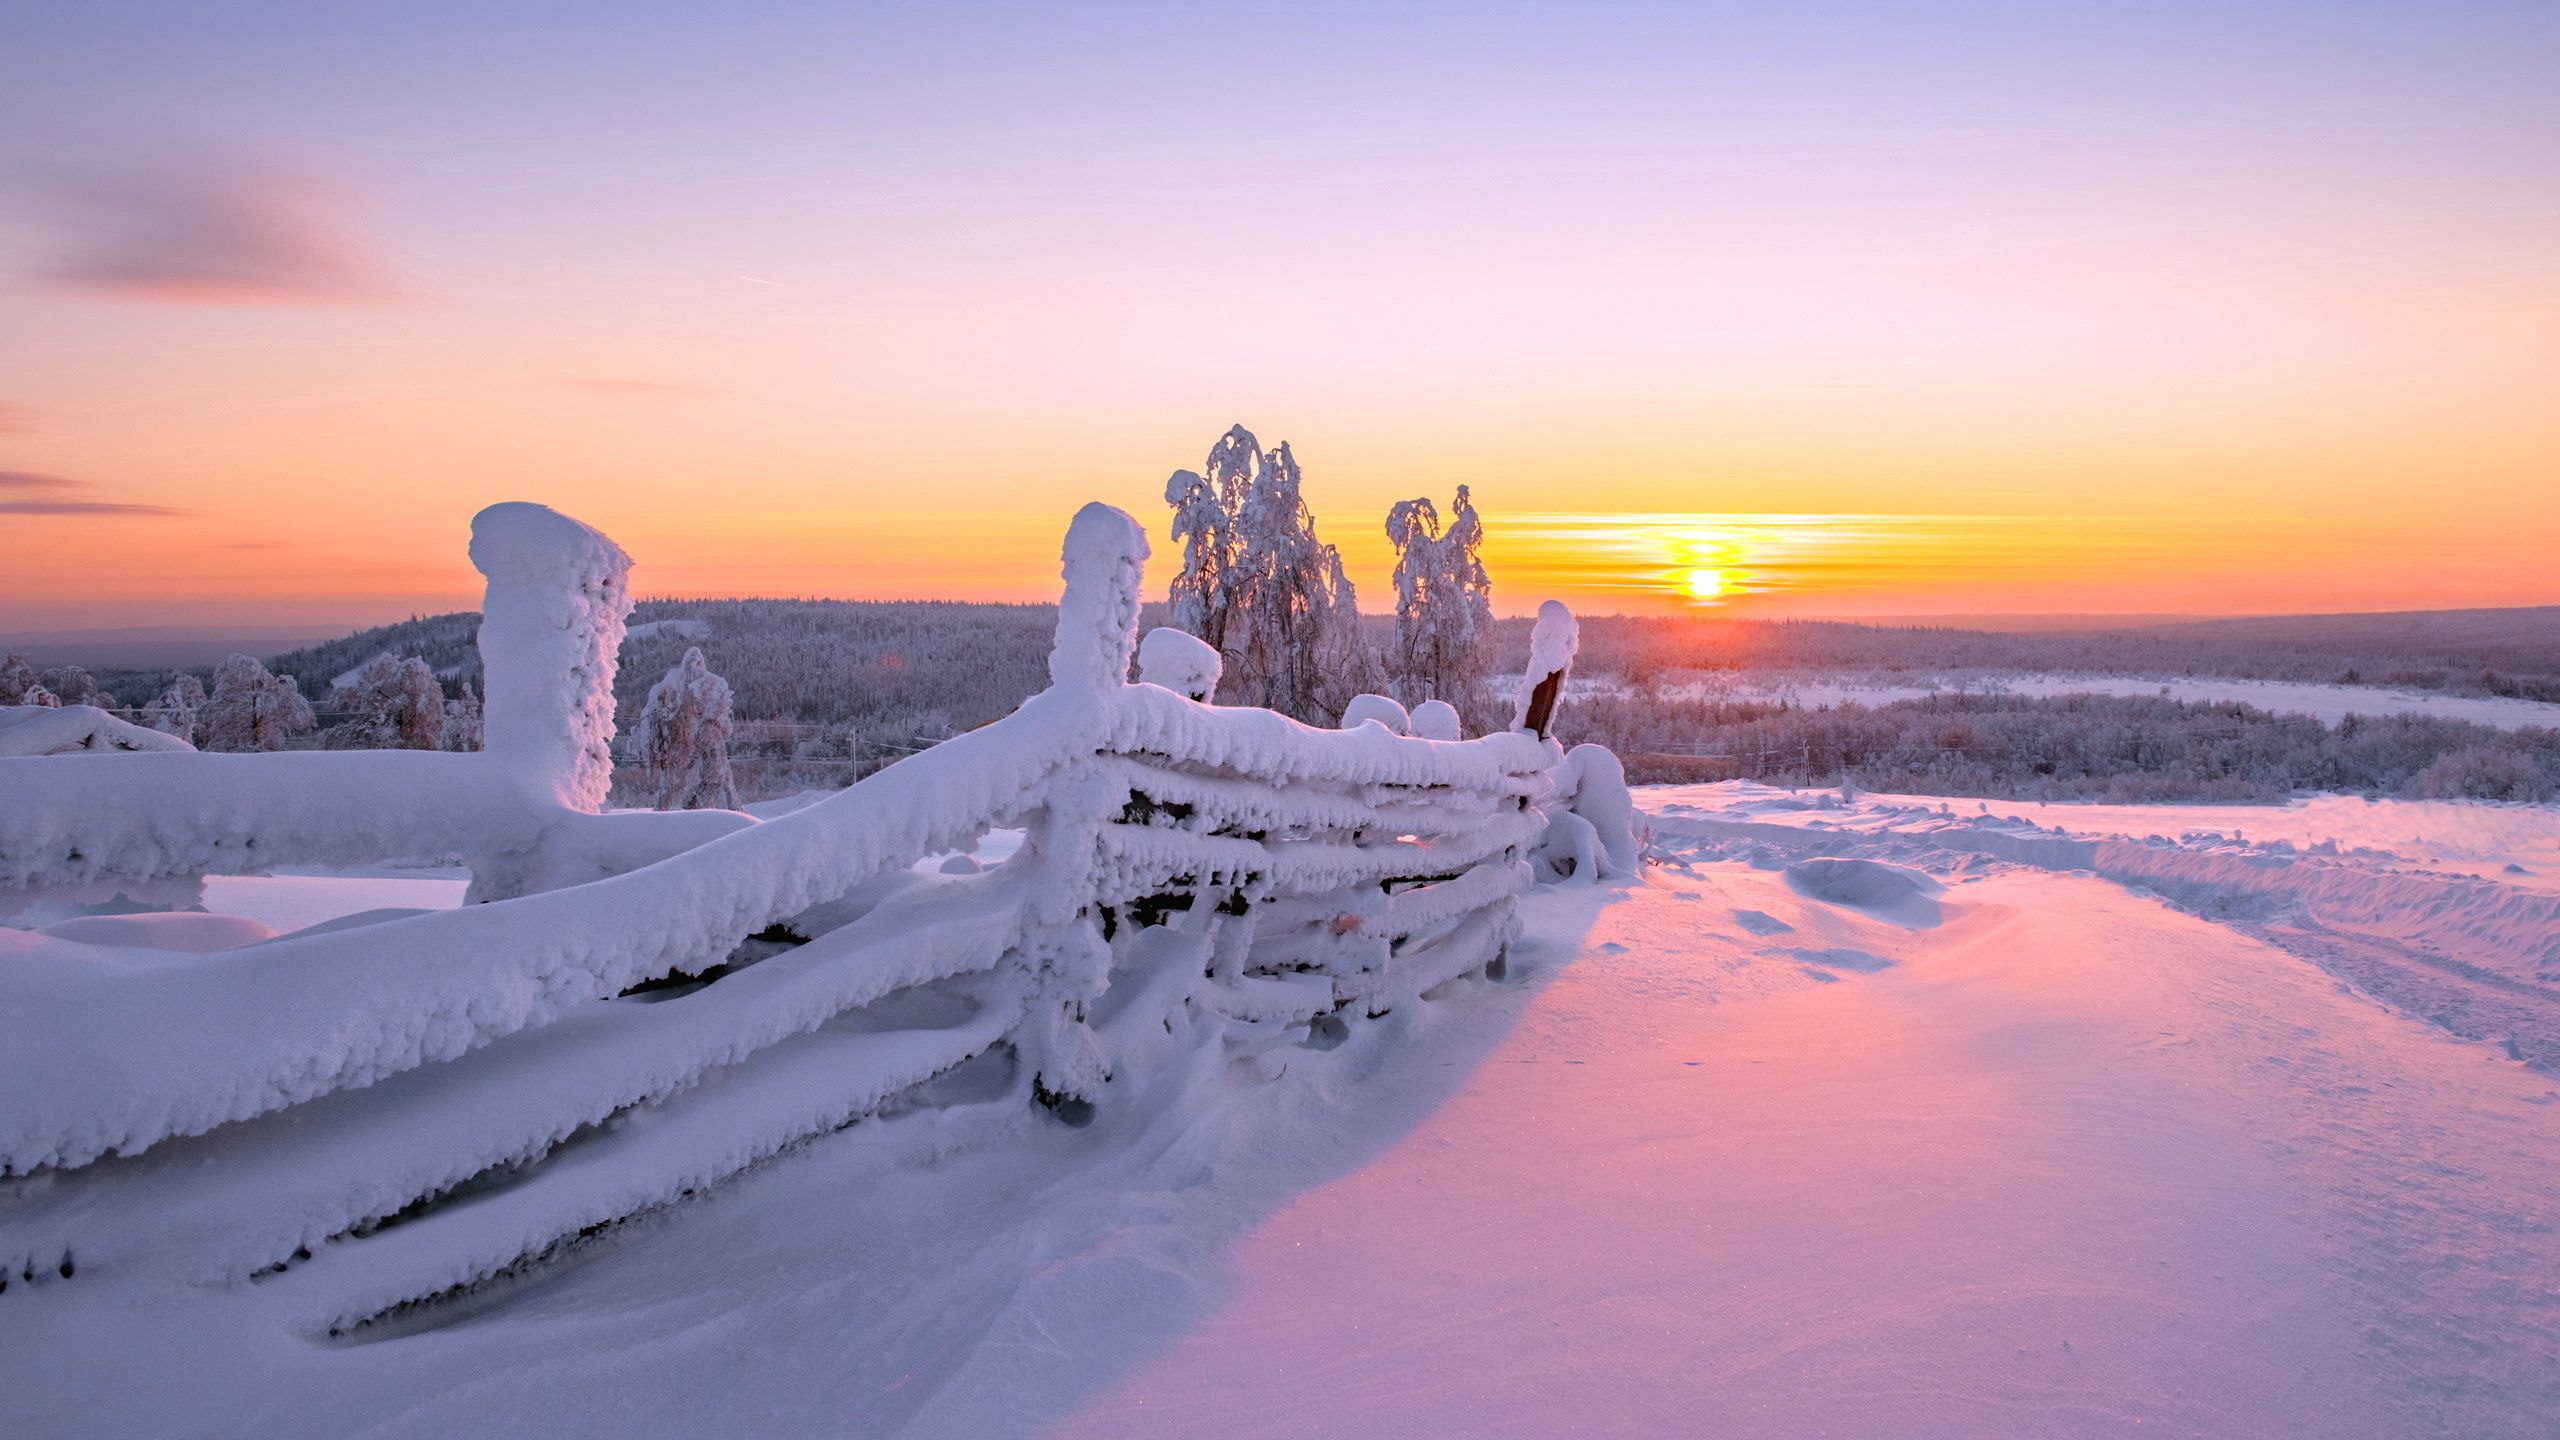 75964 download wallpaper Nature, Sunset, Winter, Fence, Landscape screensavers and pictures for free